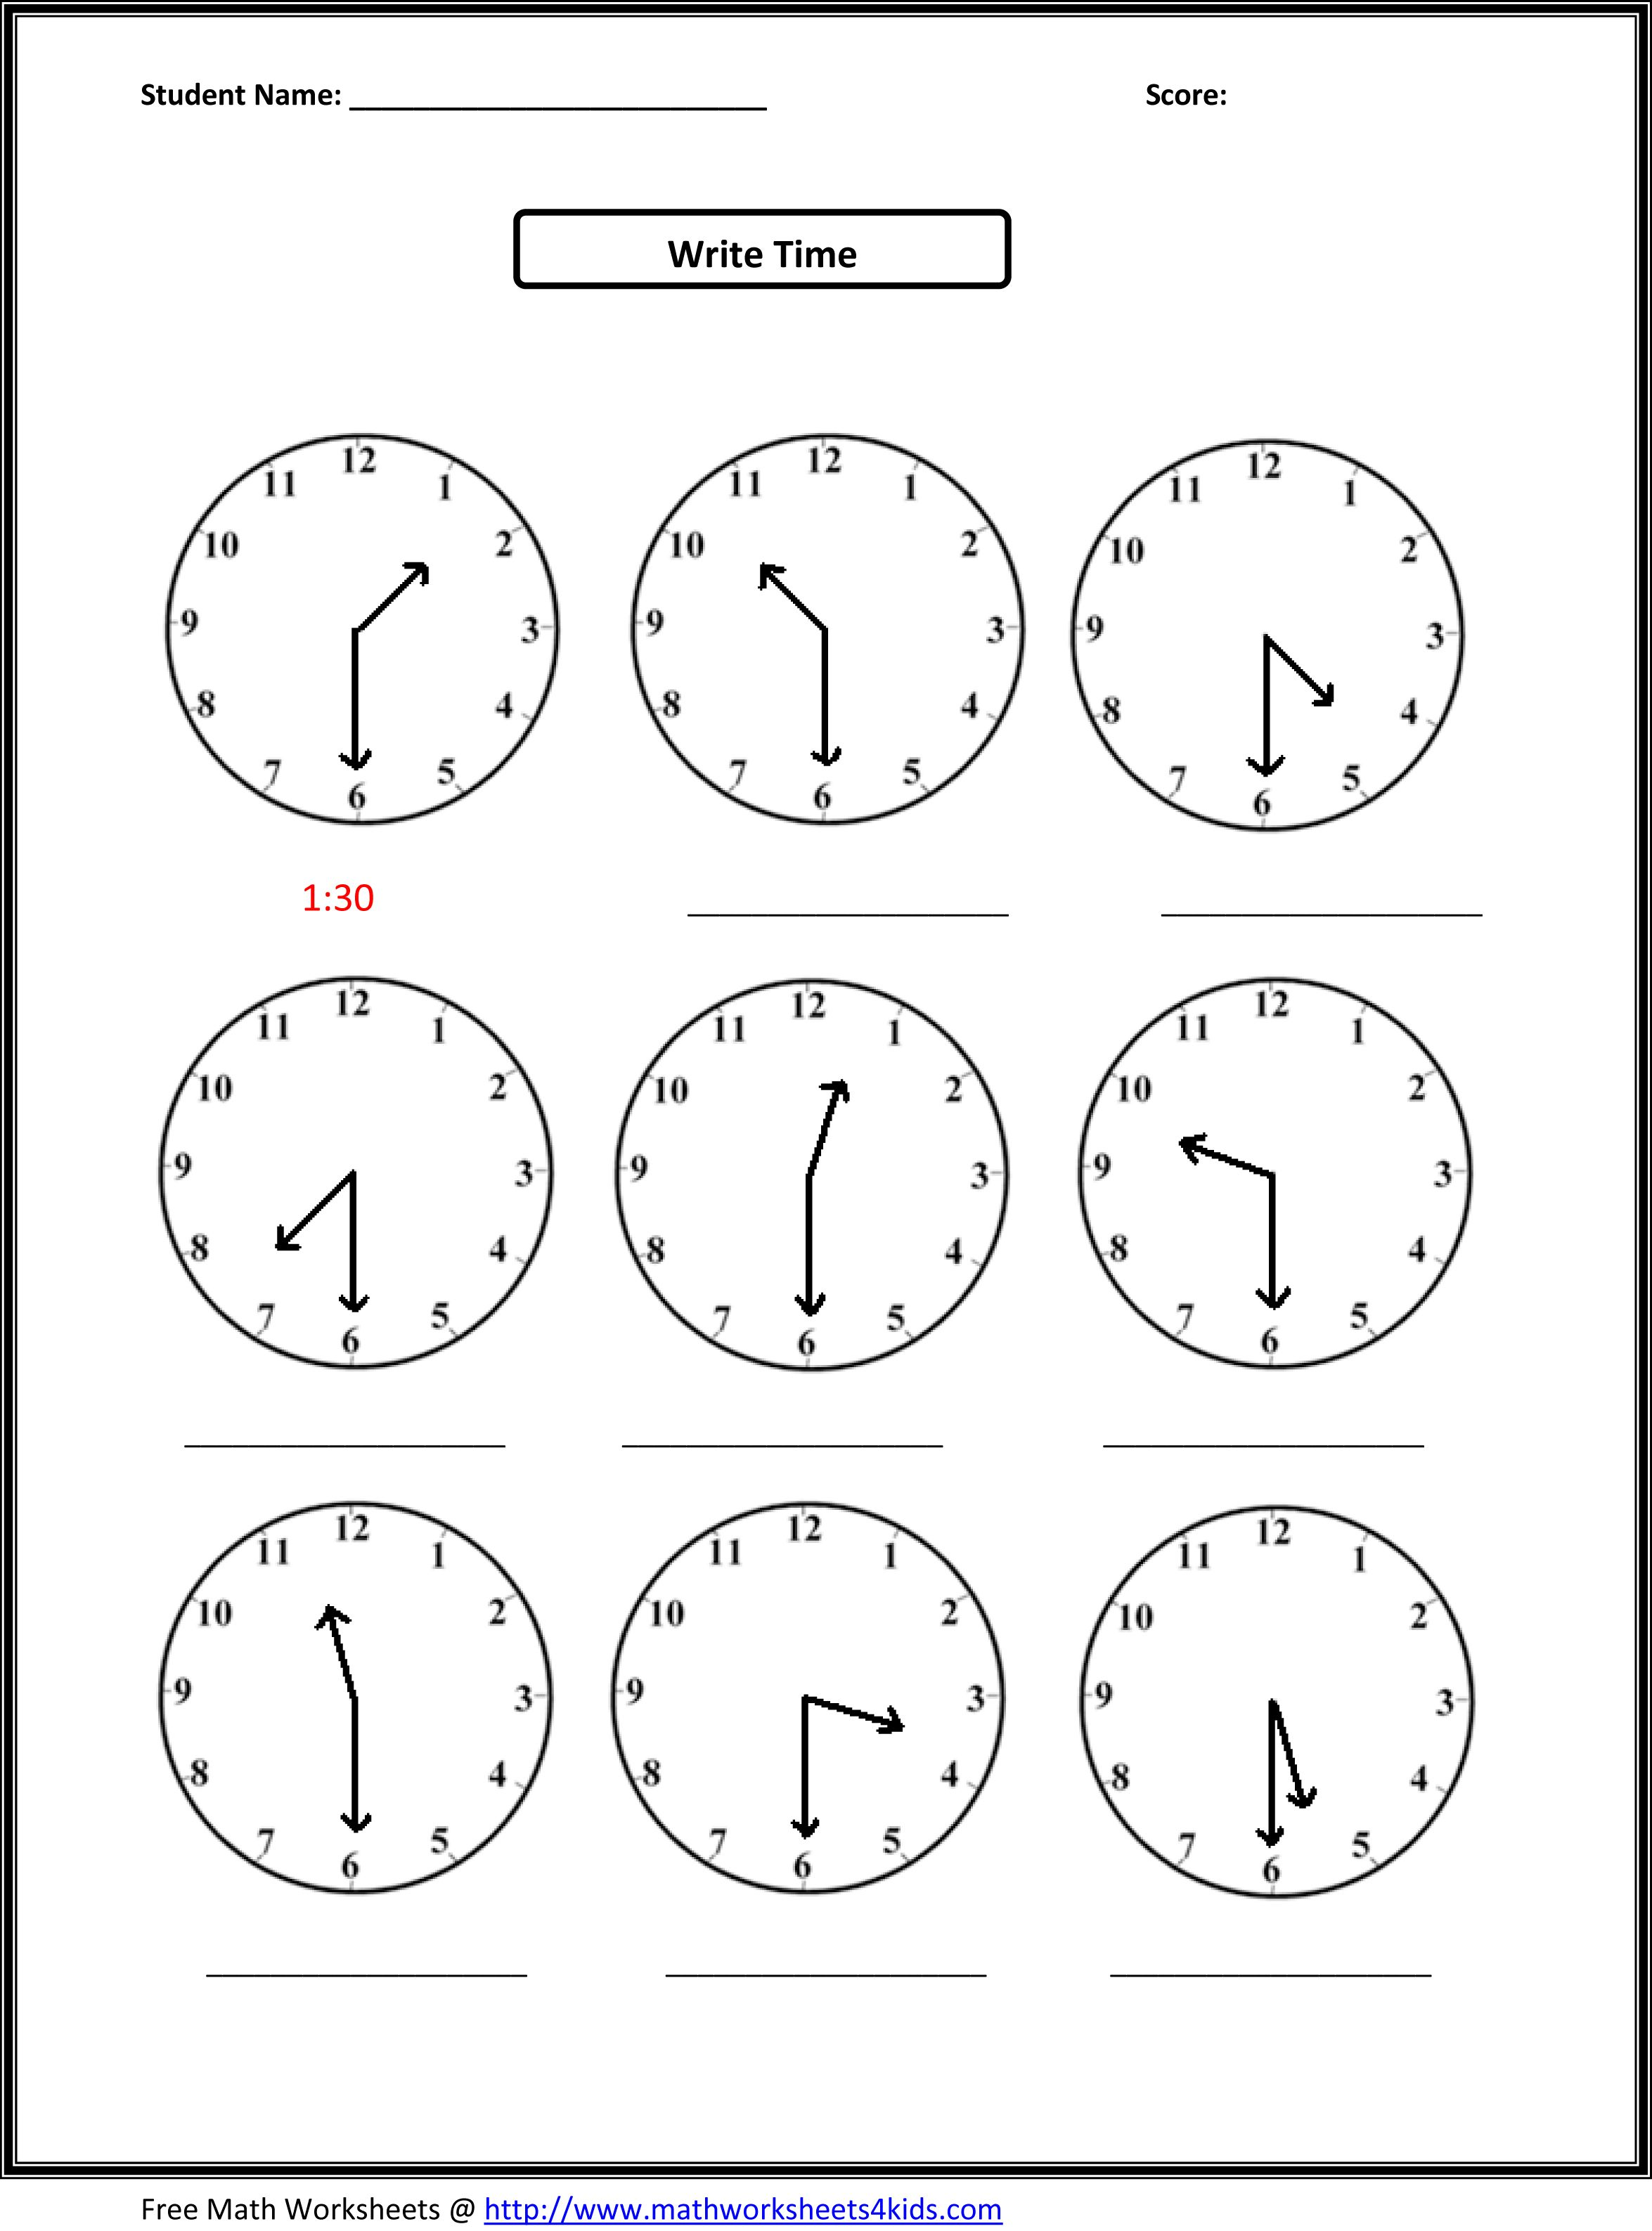 Weirdmailus  Unusual Worksheet On Time For Grade   Reocurent With Exciting Free Printable Telling Time Worksheets Nd Grade  Reocurent With Endearing Onomatopoeia Worksheets Ks Also Numbers Words Worksheets In Addition Kindergarten Nutrition Worksheets And Tenths And Hundredths Worksheet As Well As Mitosis Activity Worksheet Additionally Worksheet For Class  Maths From Reocurentcom With Weirdmailus  Exciting Worksheet On Time For Grade   Reocurent With Endearing Free Printable Telling Time Worksheets Nd Grade  Reocurent And Unusual Onomatopoeia Worksheets Ks Also Numbers Words Worksheets In Addition Kindergarten Nutrition Worksheets From Reocurentcom